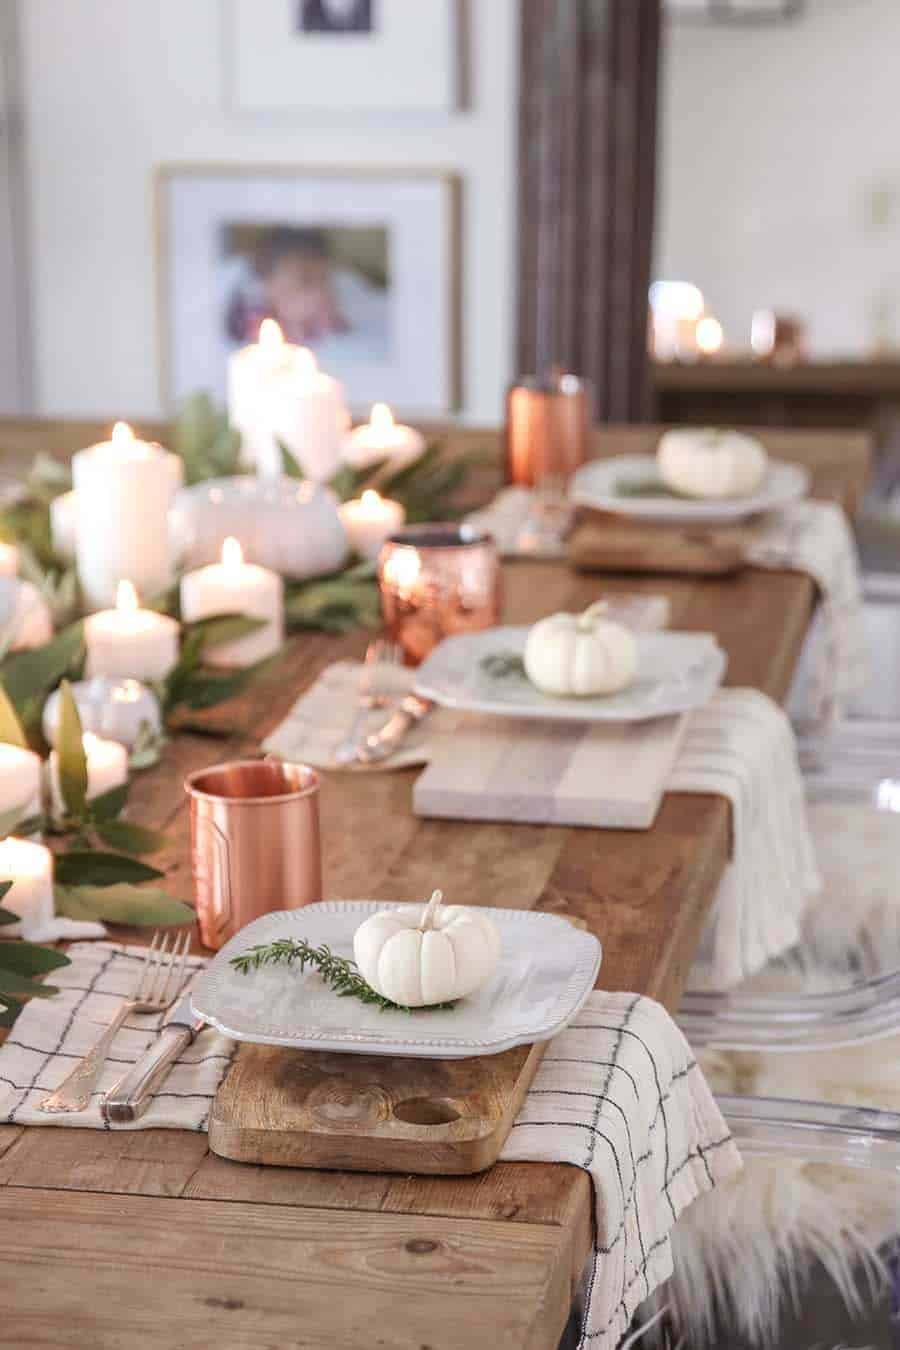 Amazing-Fall-Table-Decor-Ideas-For-Decorating-11-1-Kindesign